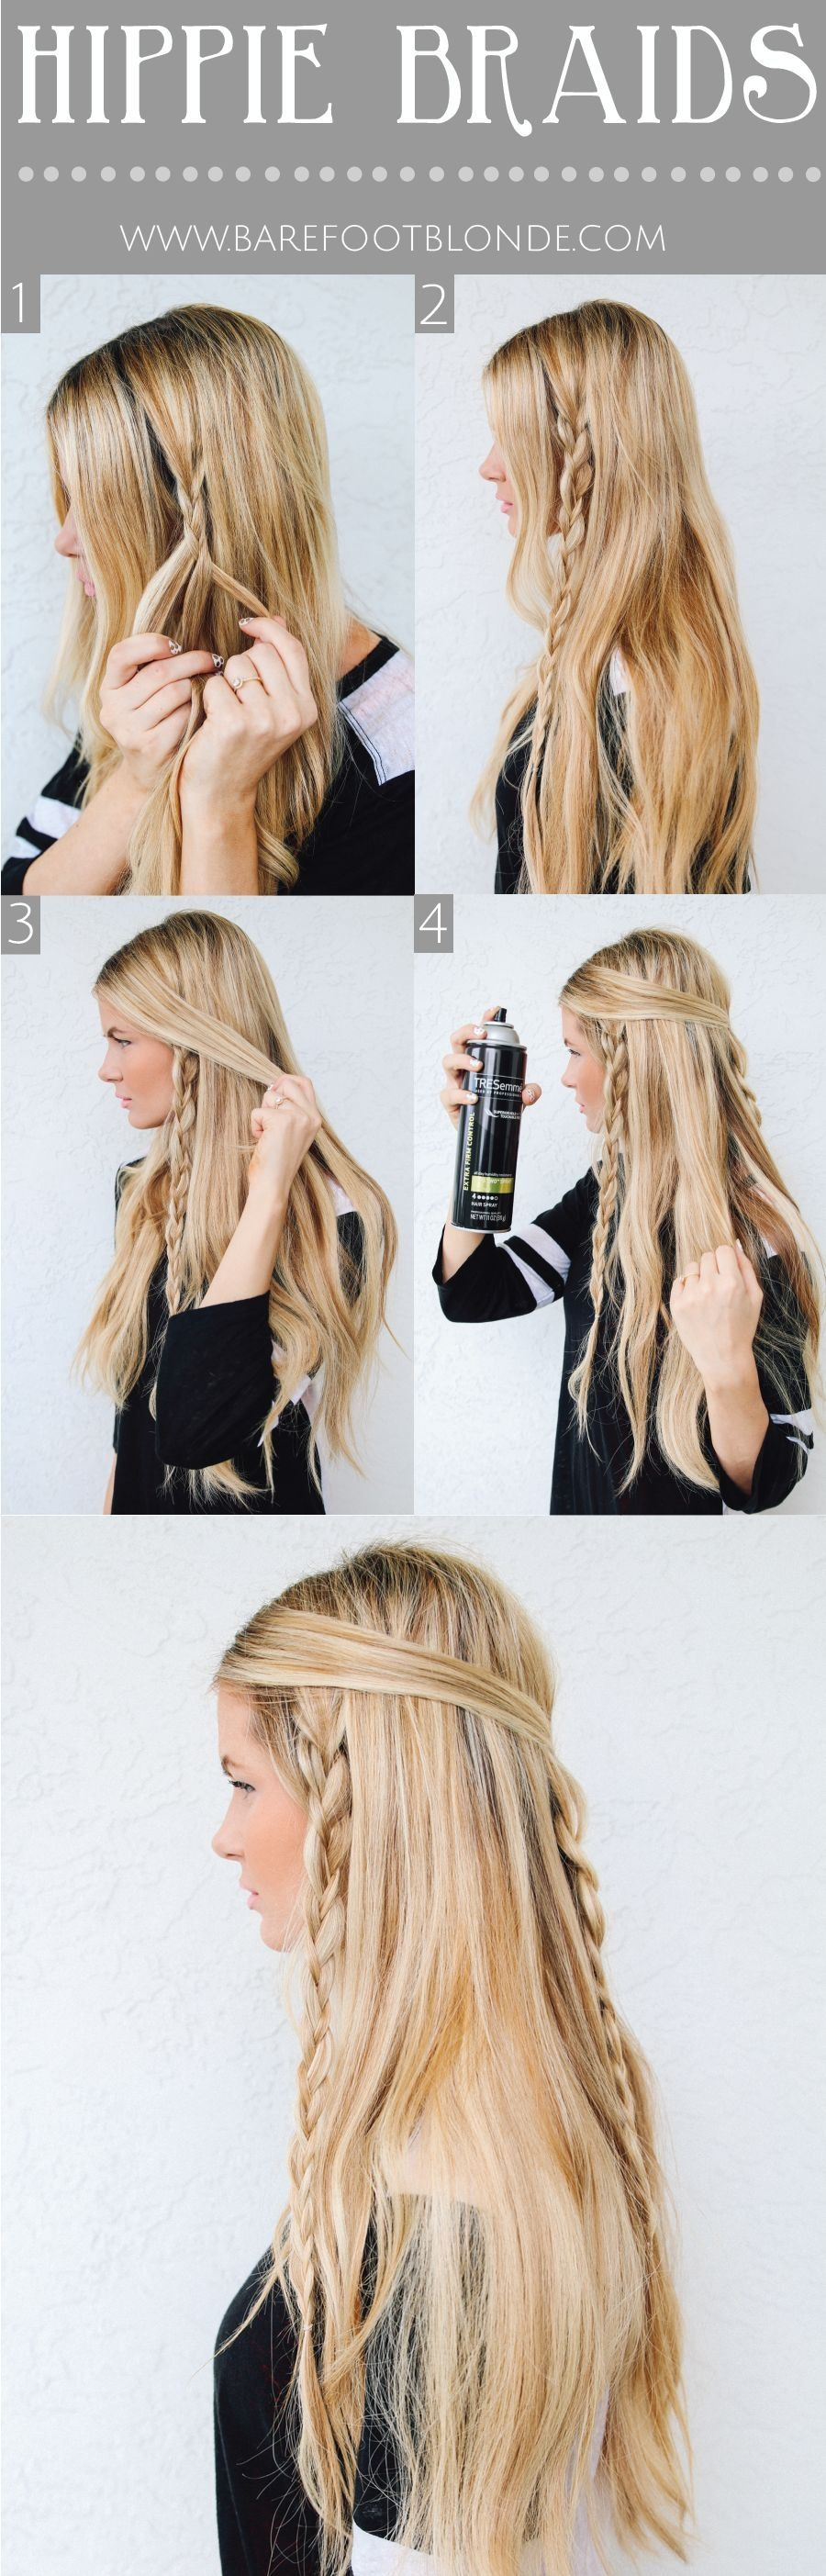 images about beauty tips on pinterest glitter easy hair and